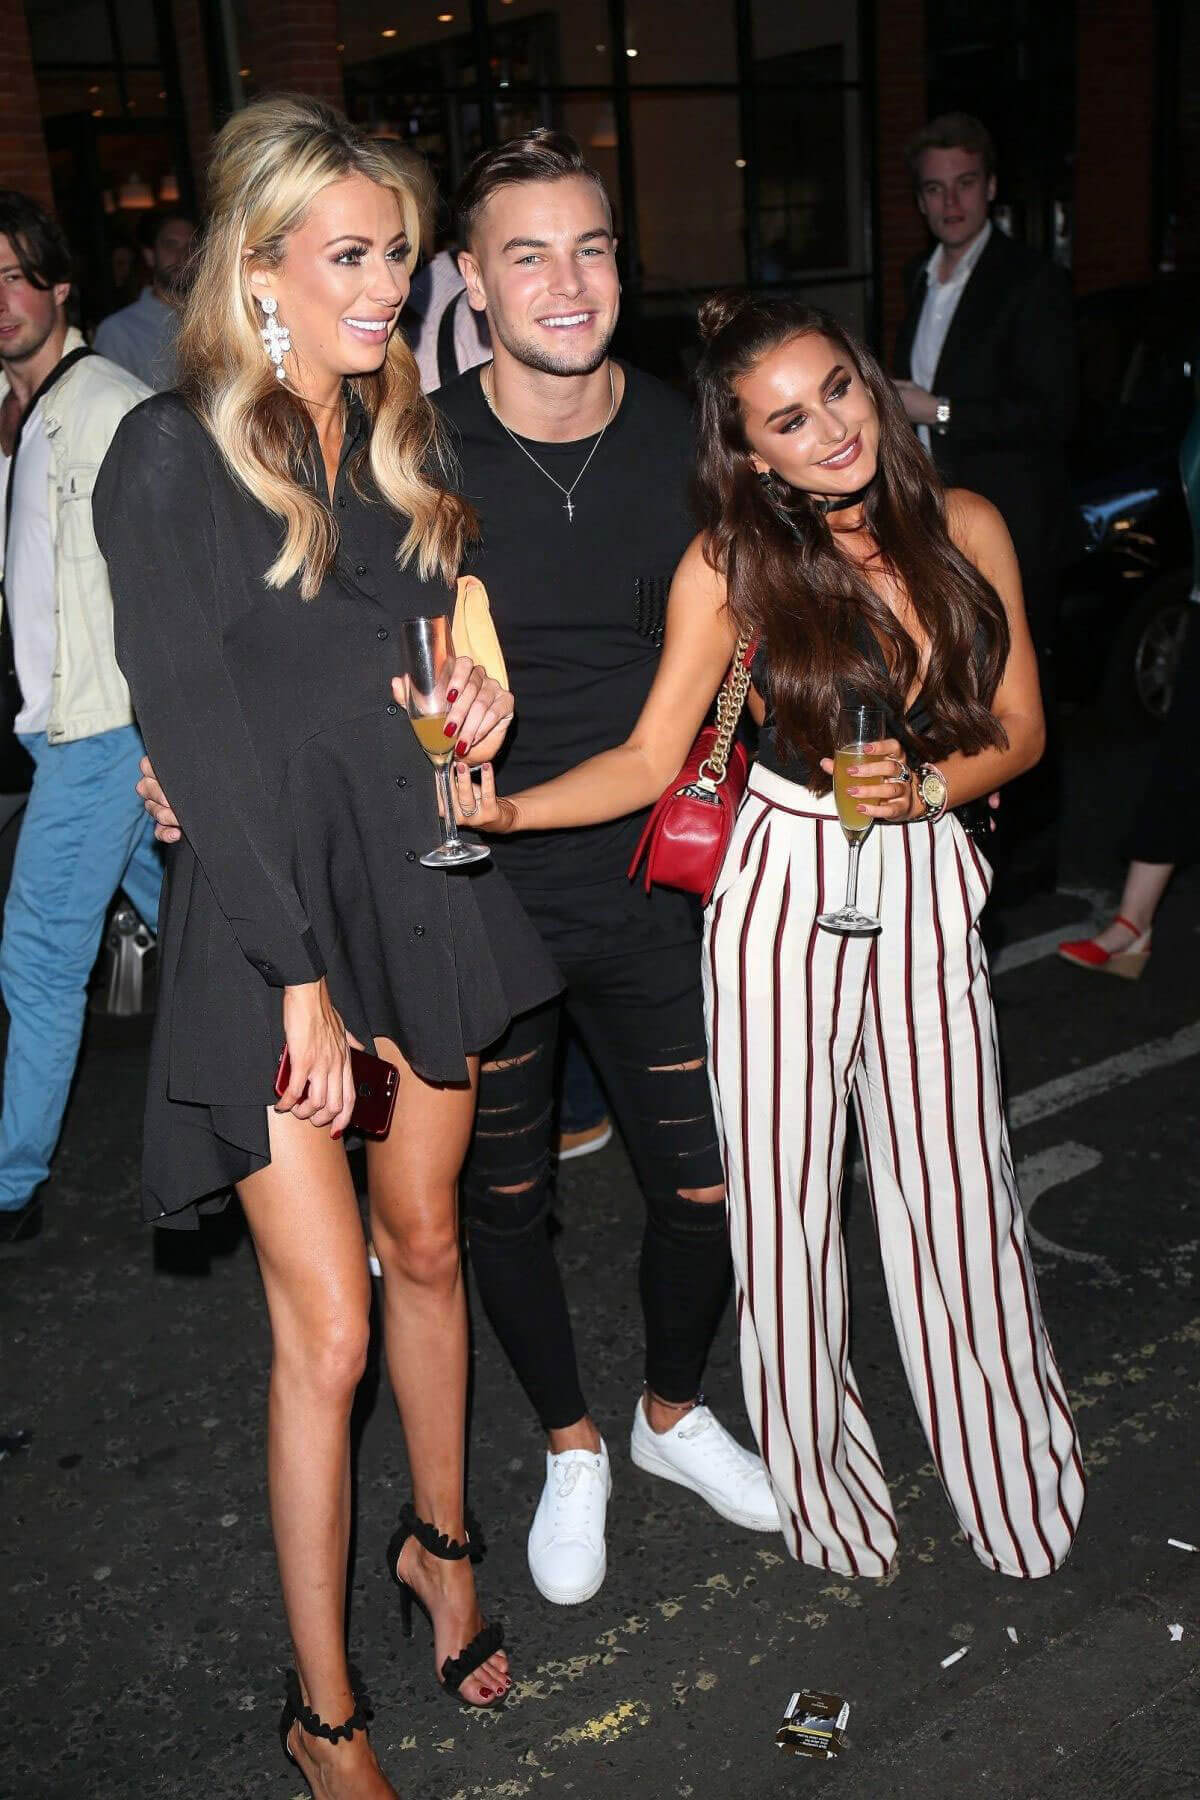 Mia Amber Davis and Olivia Attwood Stills at Inthestyle Fashion in London